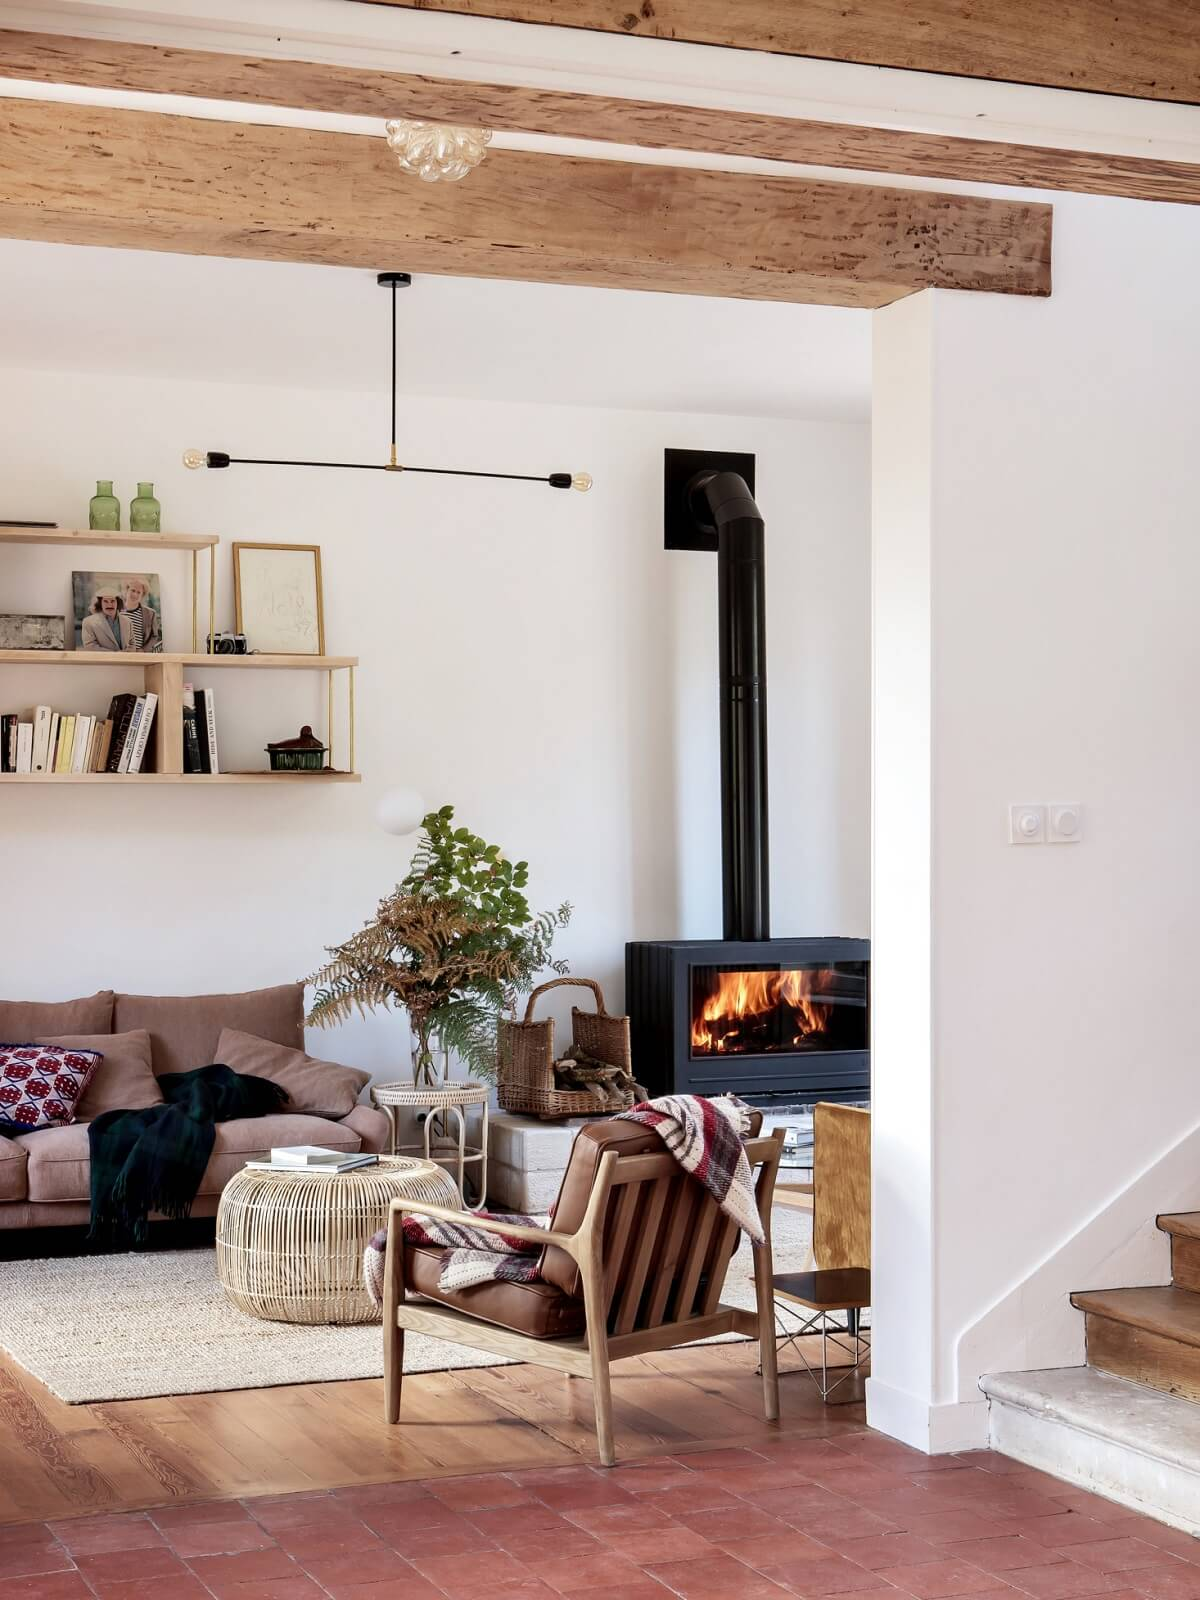 Riverside House: A Stunning Rental Guesthouse in Normandy